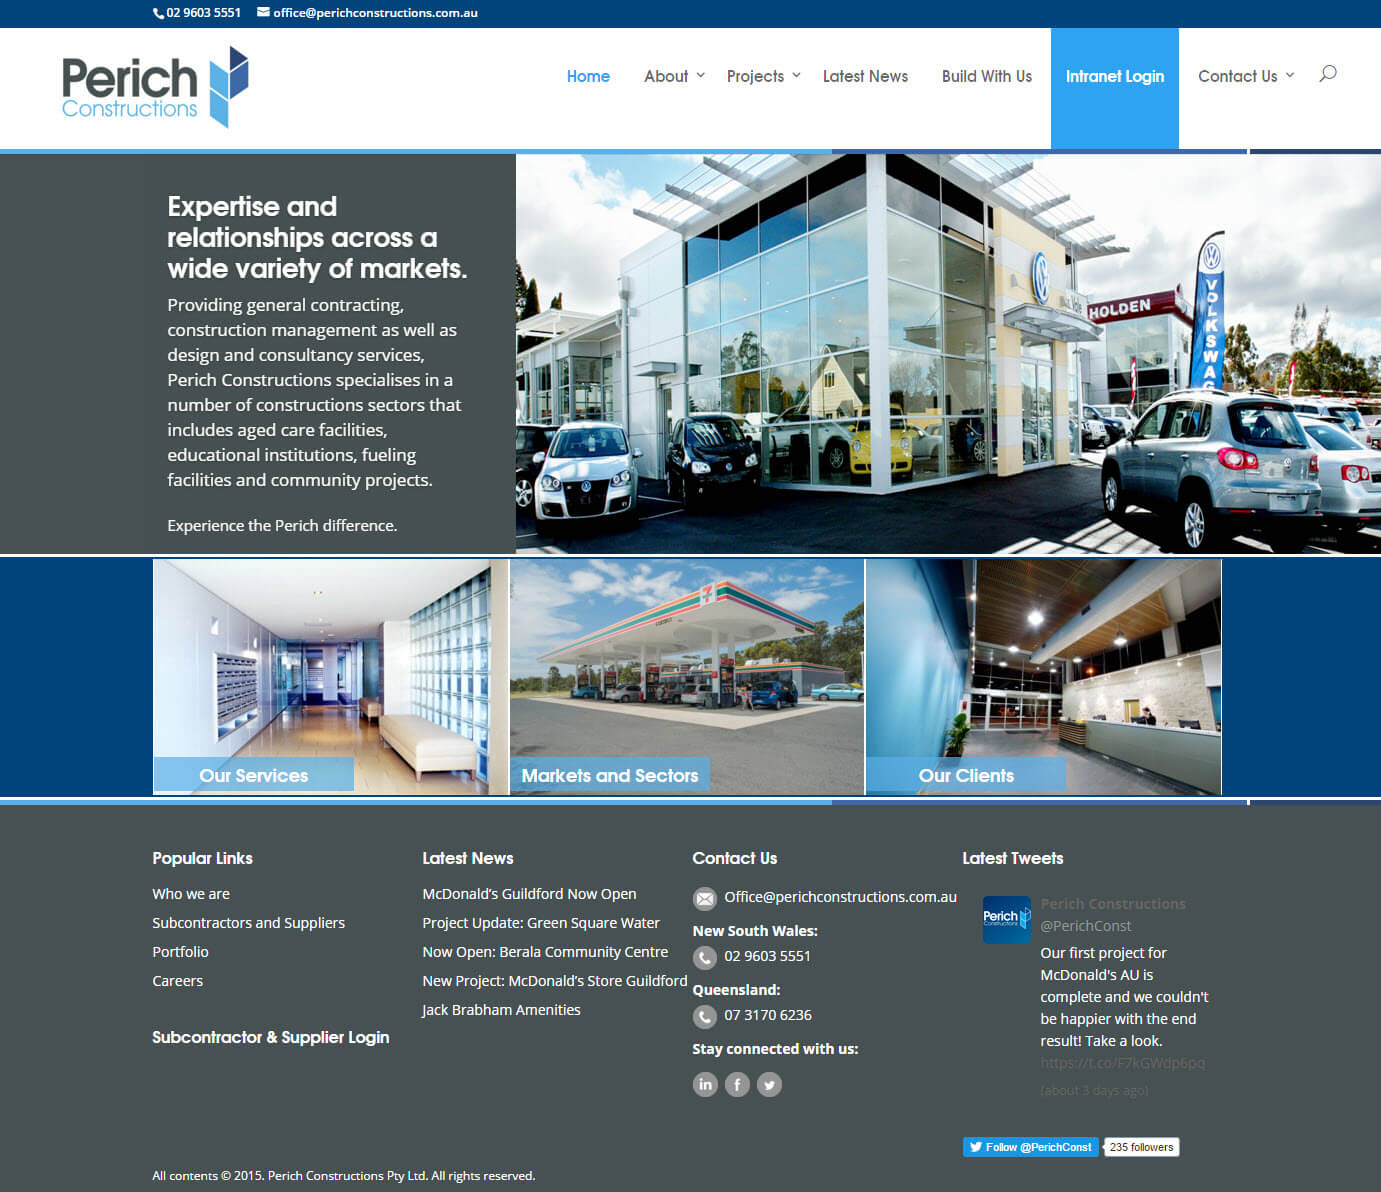 PERICH CONSTRUCTIONS